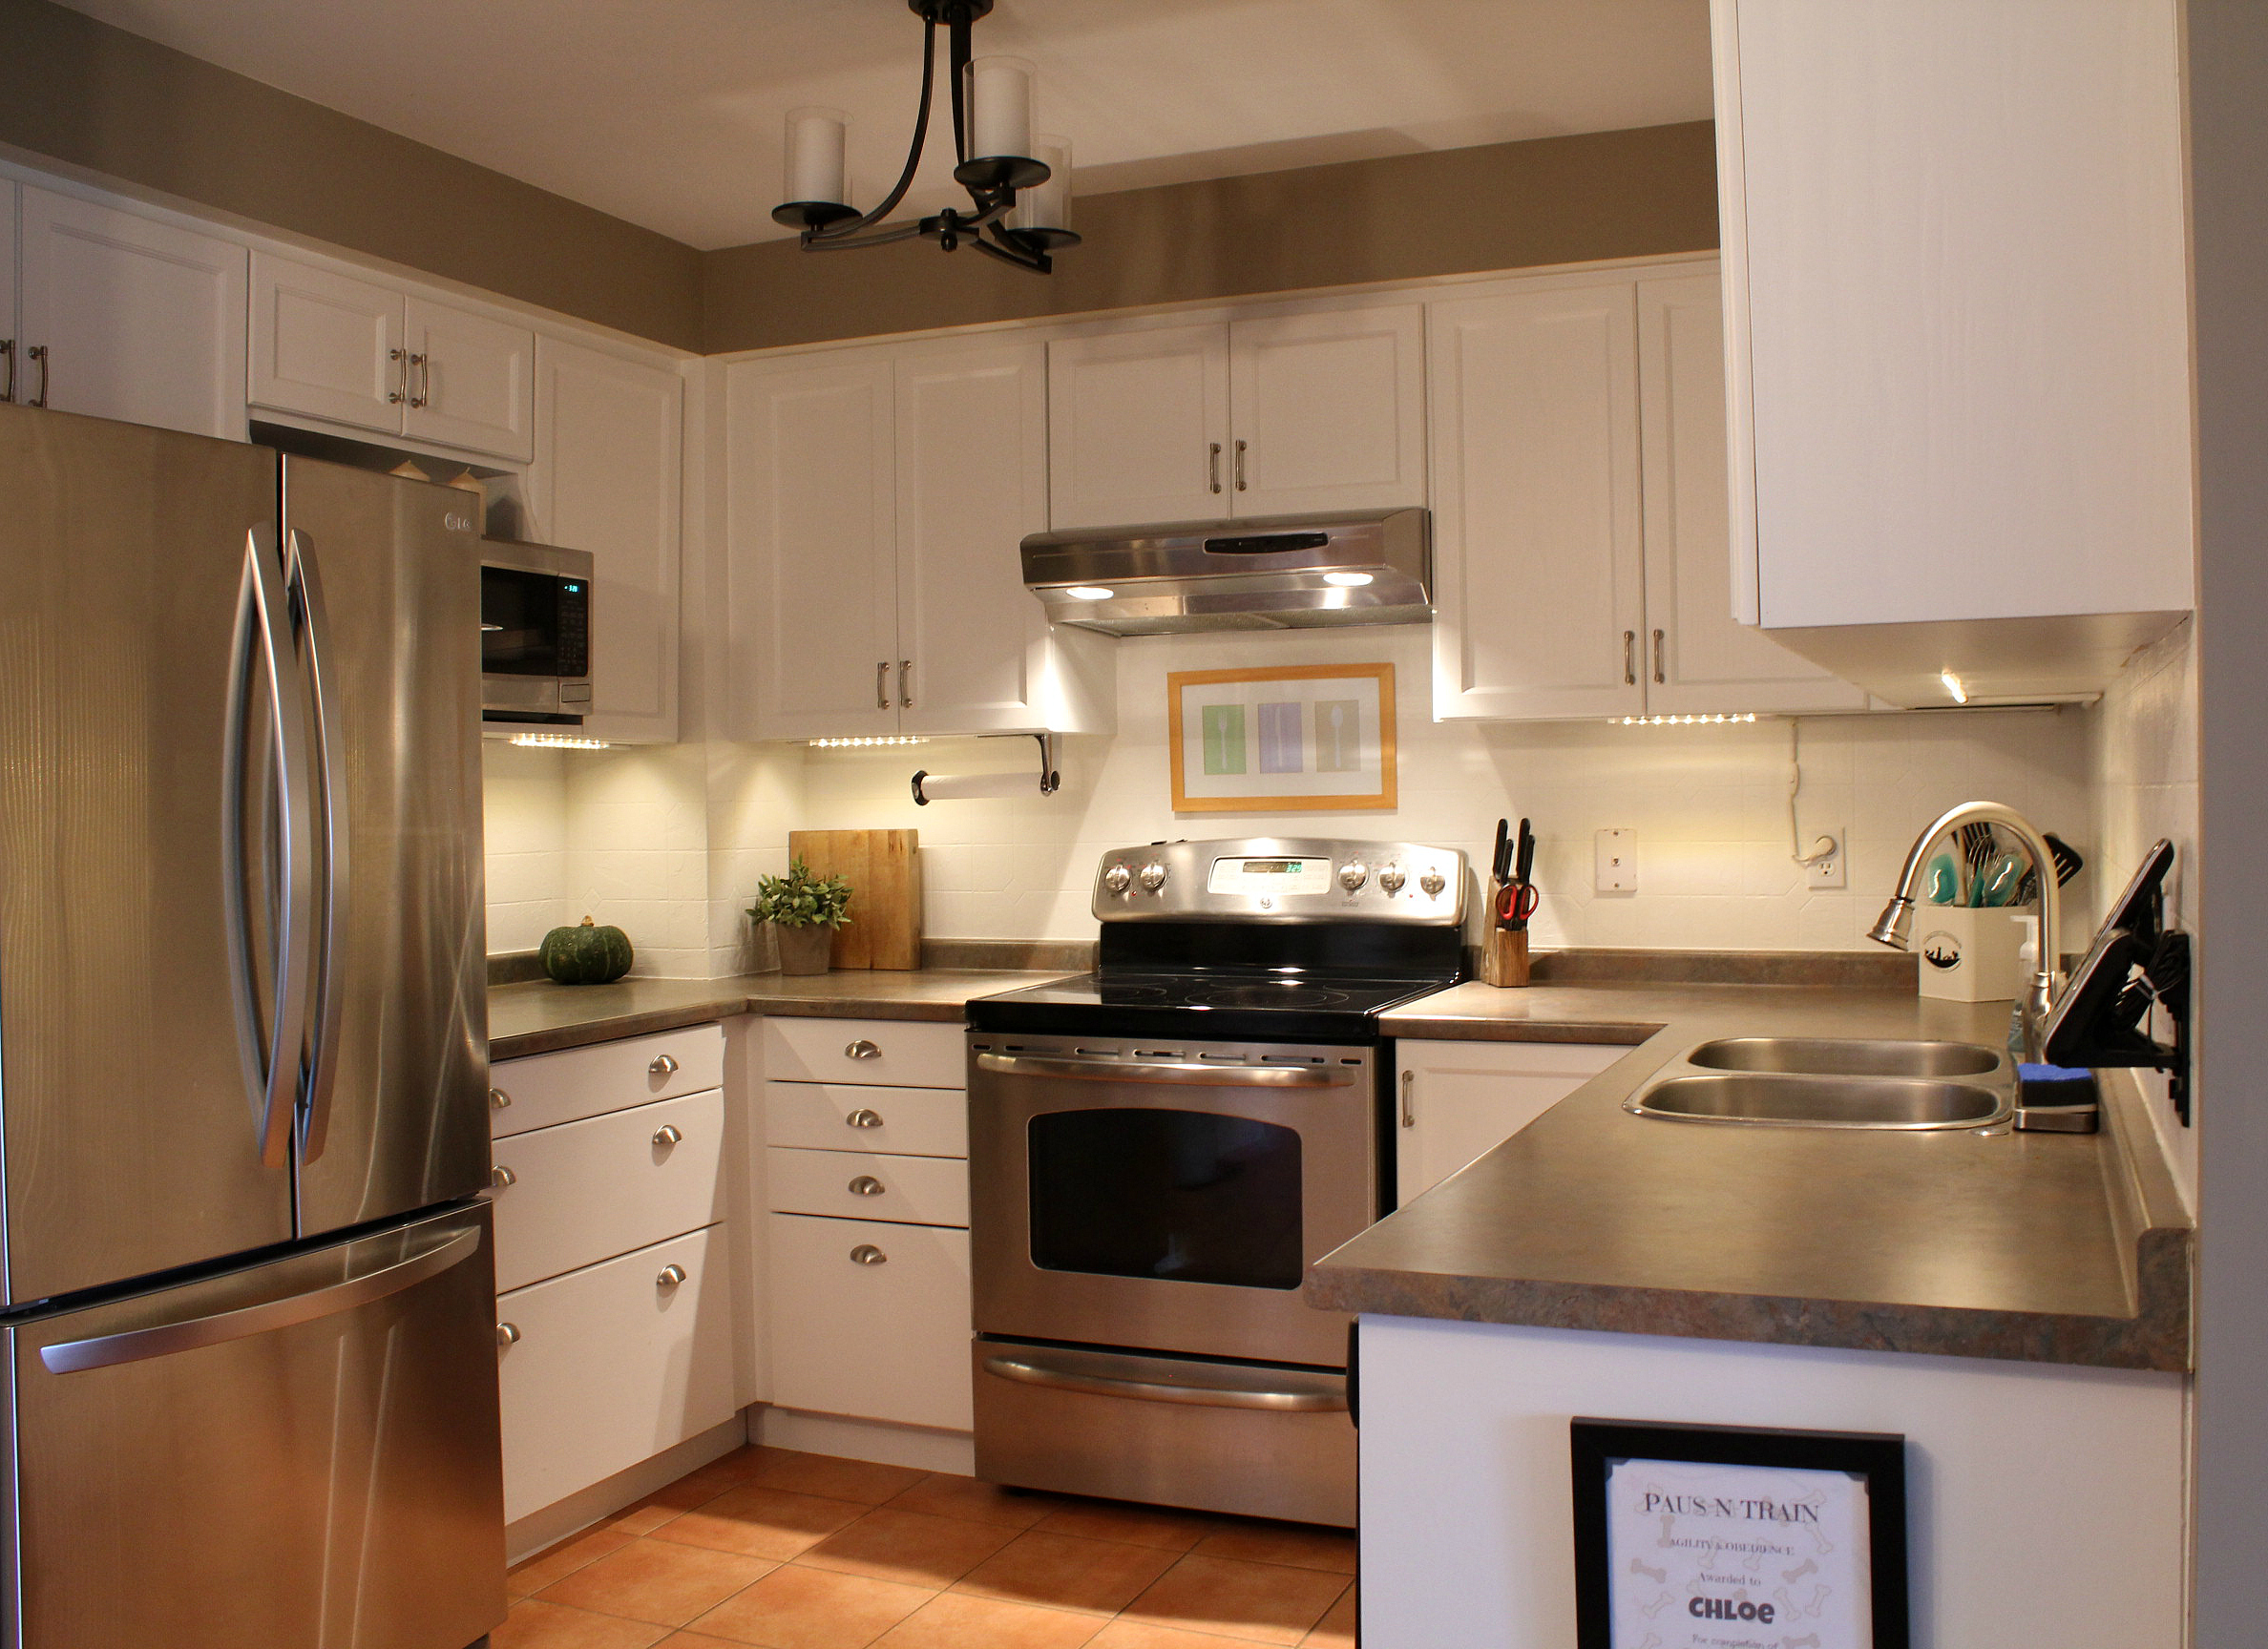 Can I Paint My Kitchen Cabinets Without Sanding